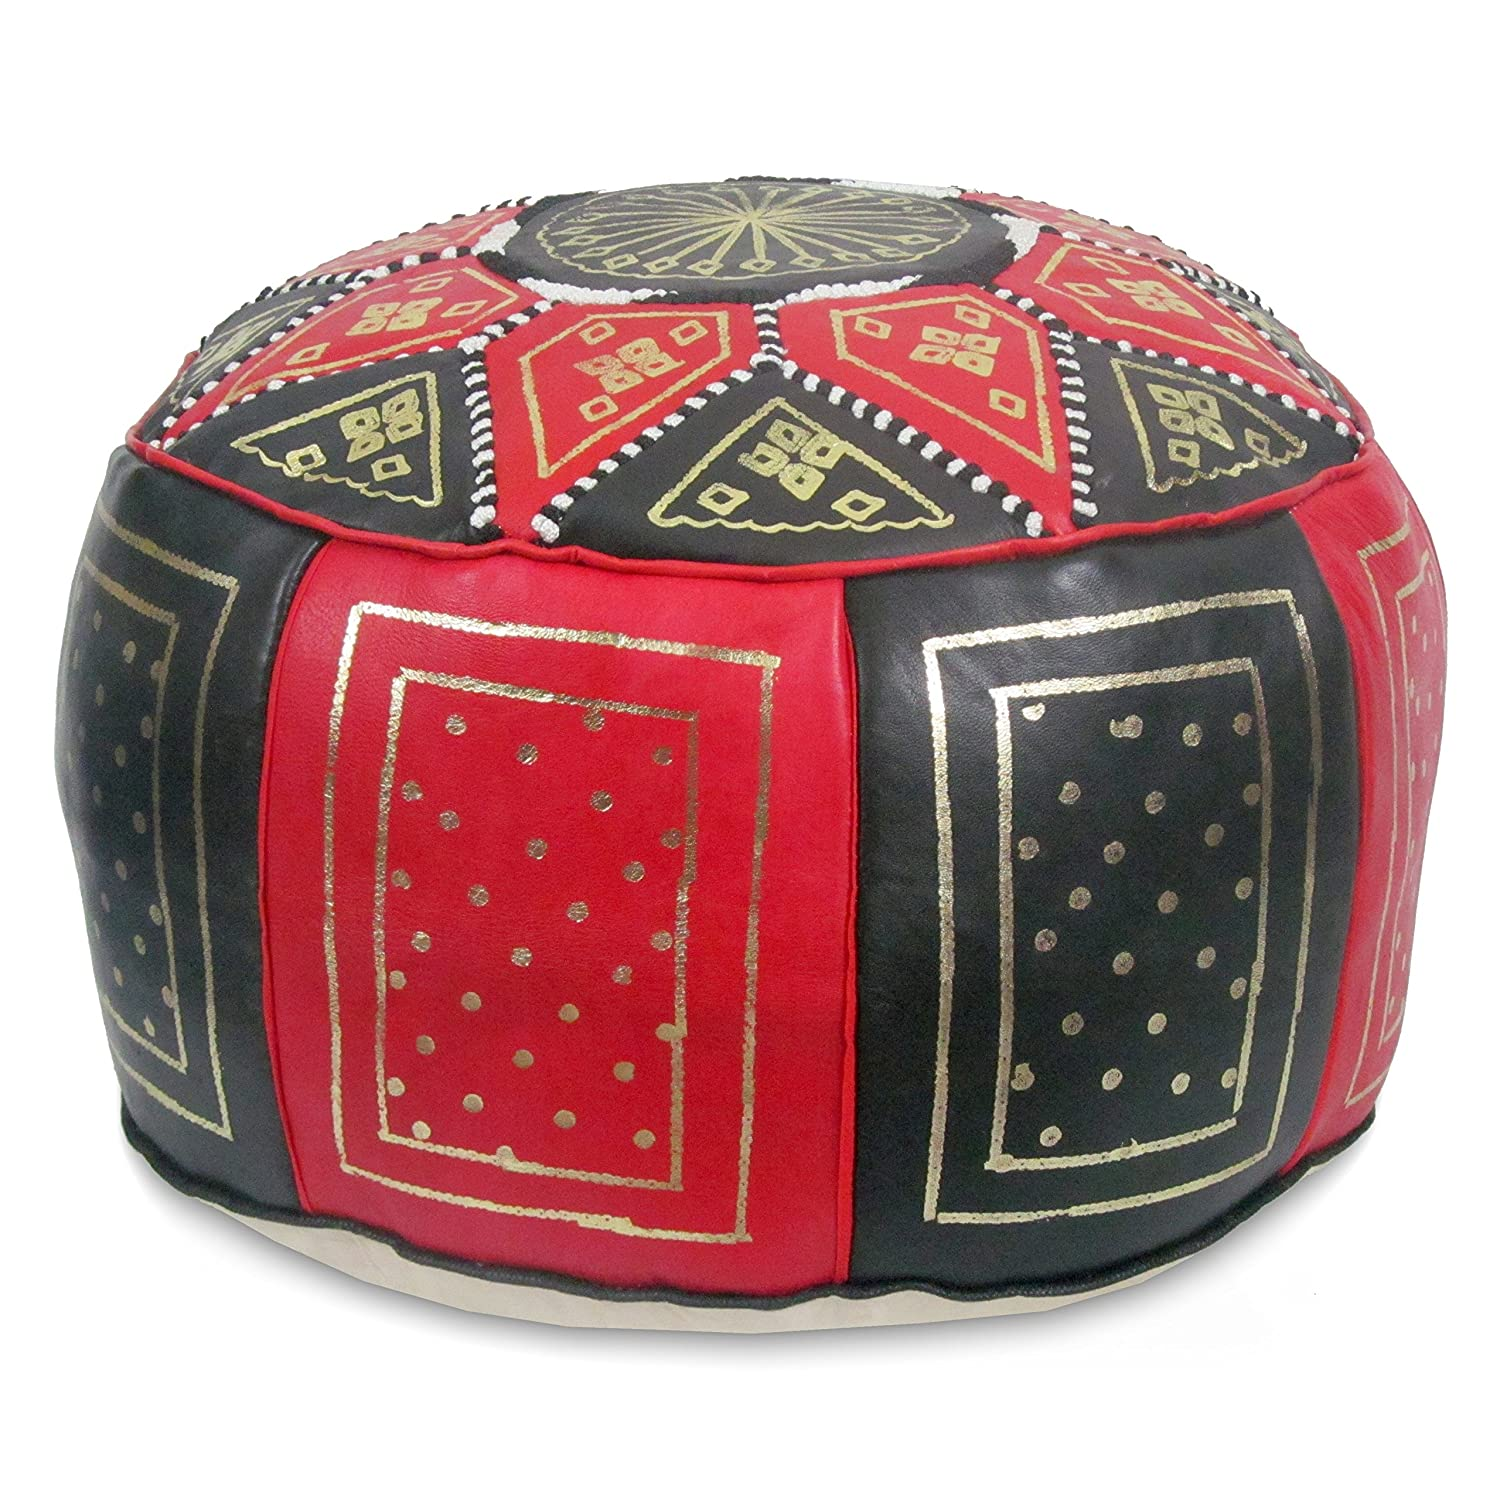 Square handcrafted moroccan leather pouf dark tan pouf pouffe ottoman - Amazon Com Mina Stuffed Moroccan Golden Fez Leather Pouf Ottoman Many Colors Available 16 Diameter And 12 Height Navy Blue Kitchen Dining